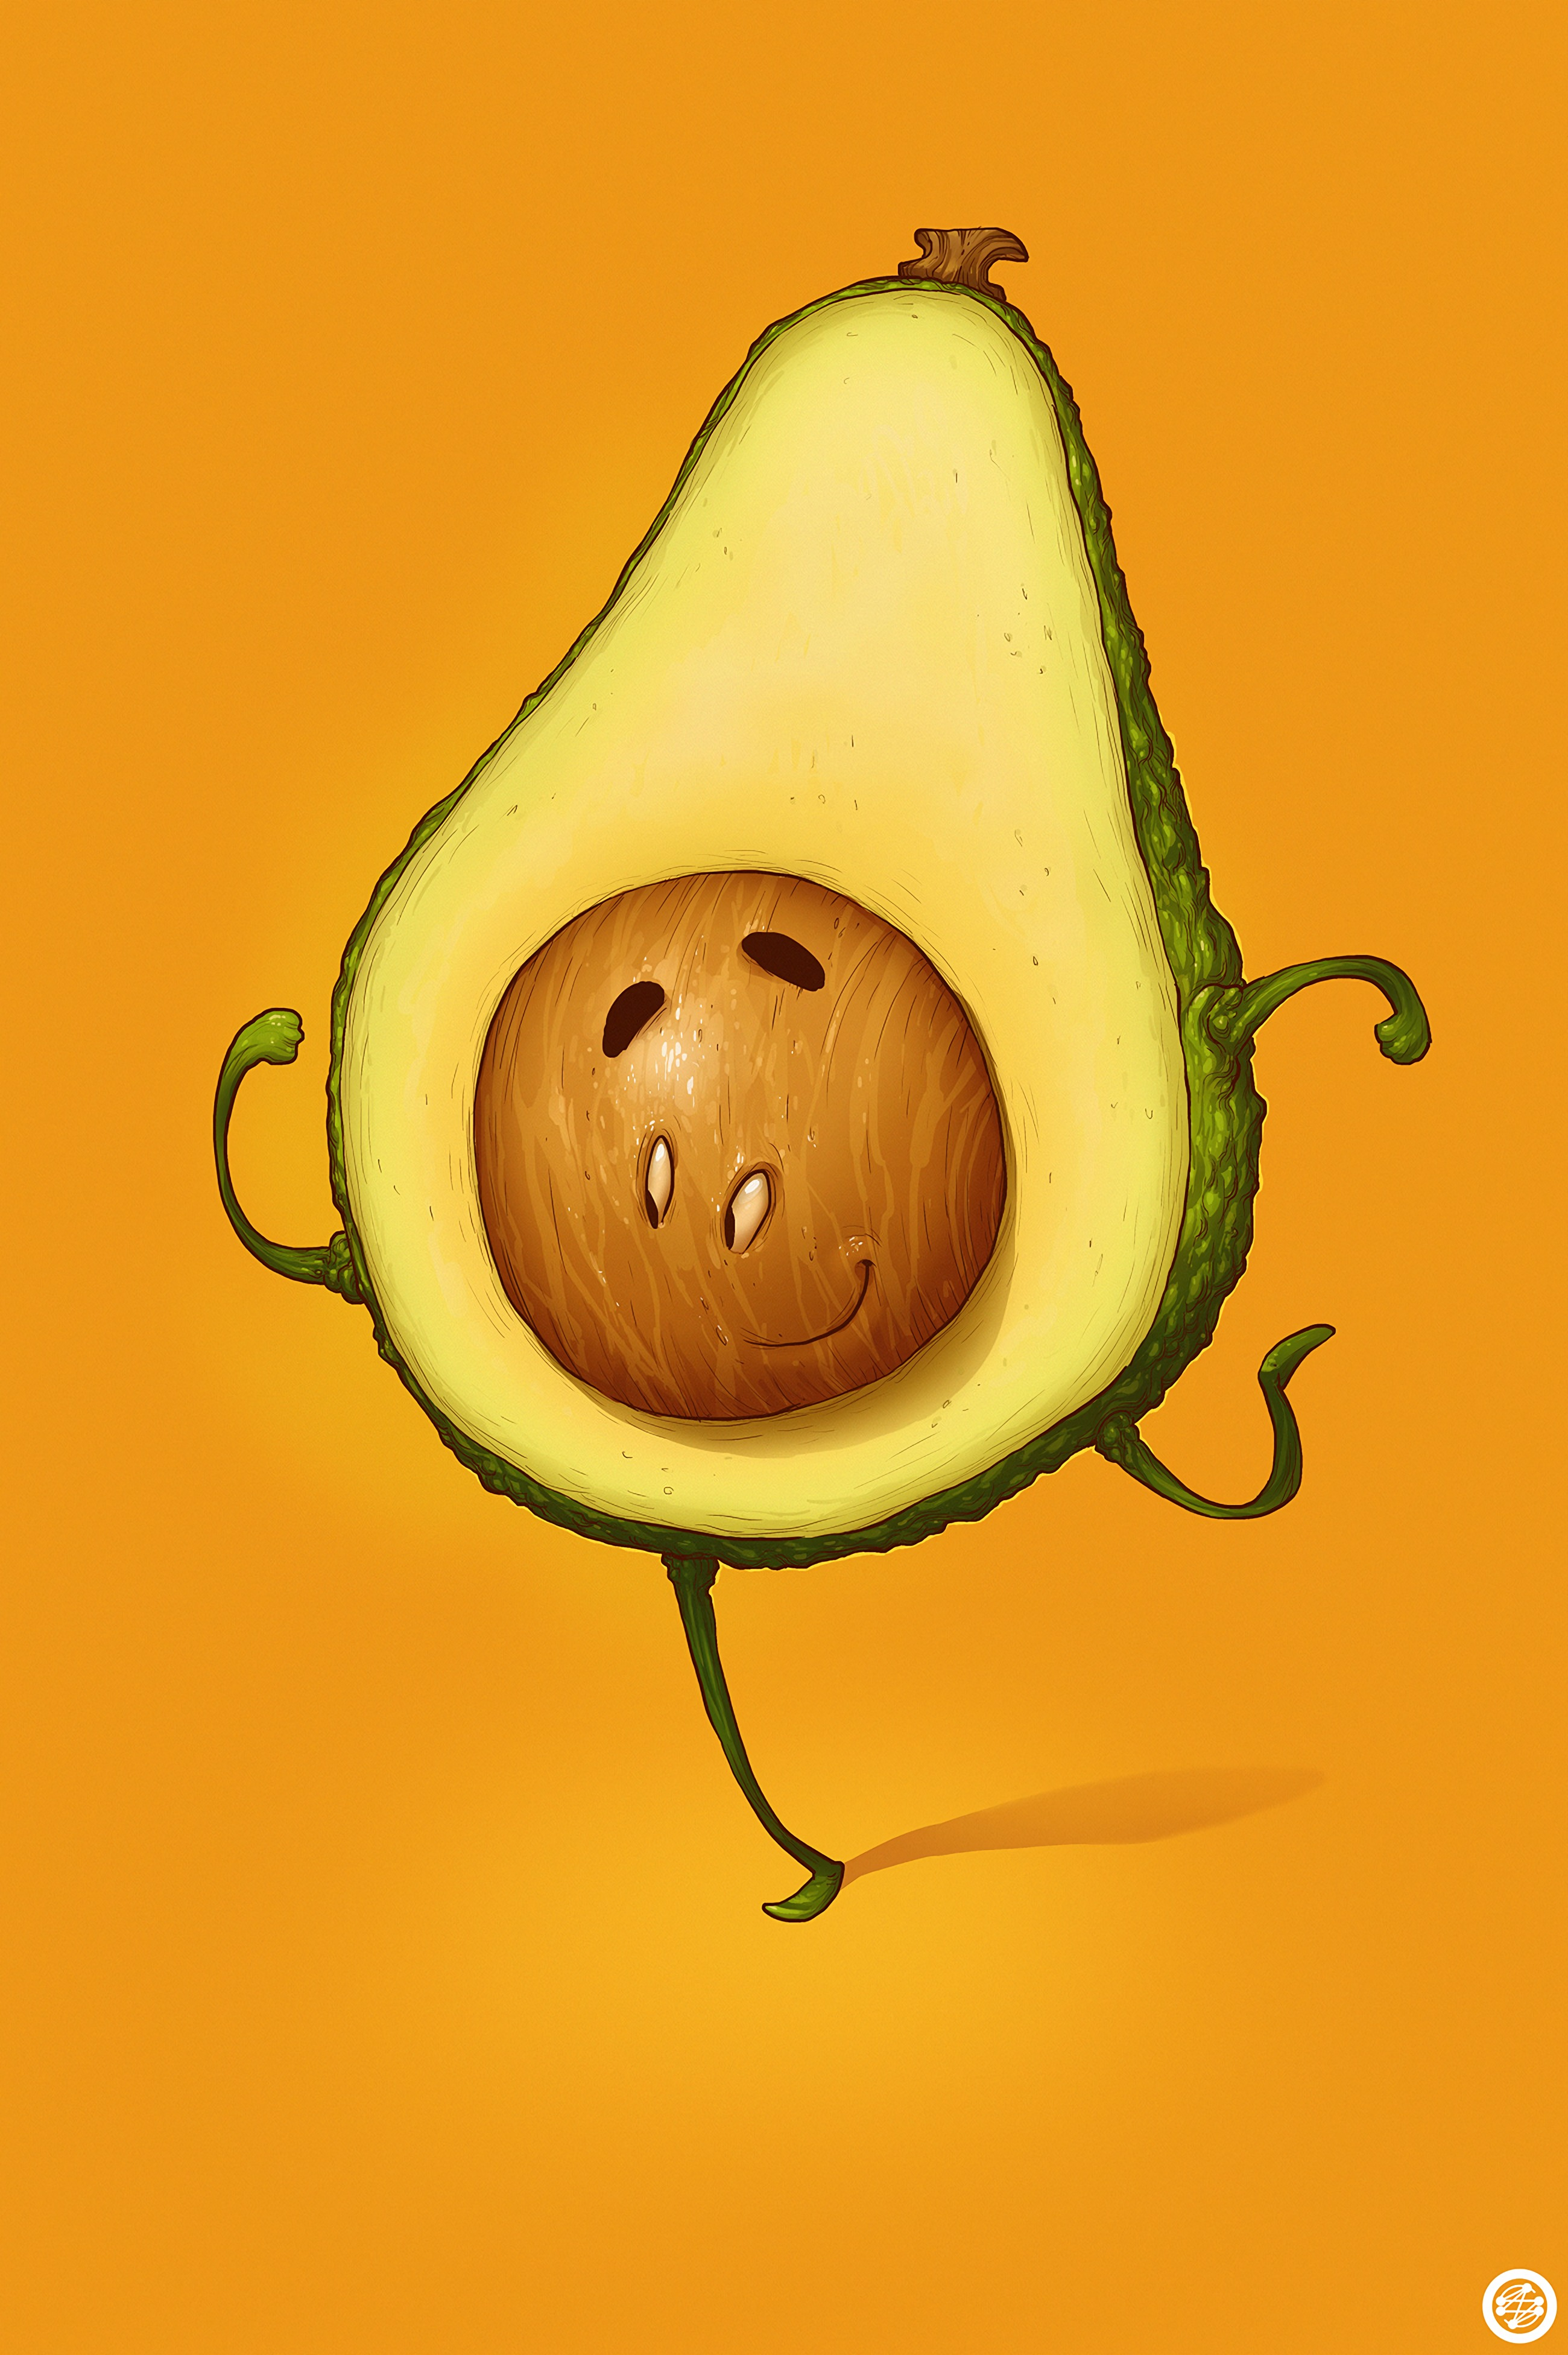 59496 Screensavers and Wallpapers Smile for phone. Download Funny, Art, Smile, Avocado, Smalik pictures for free